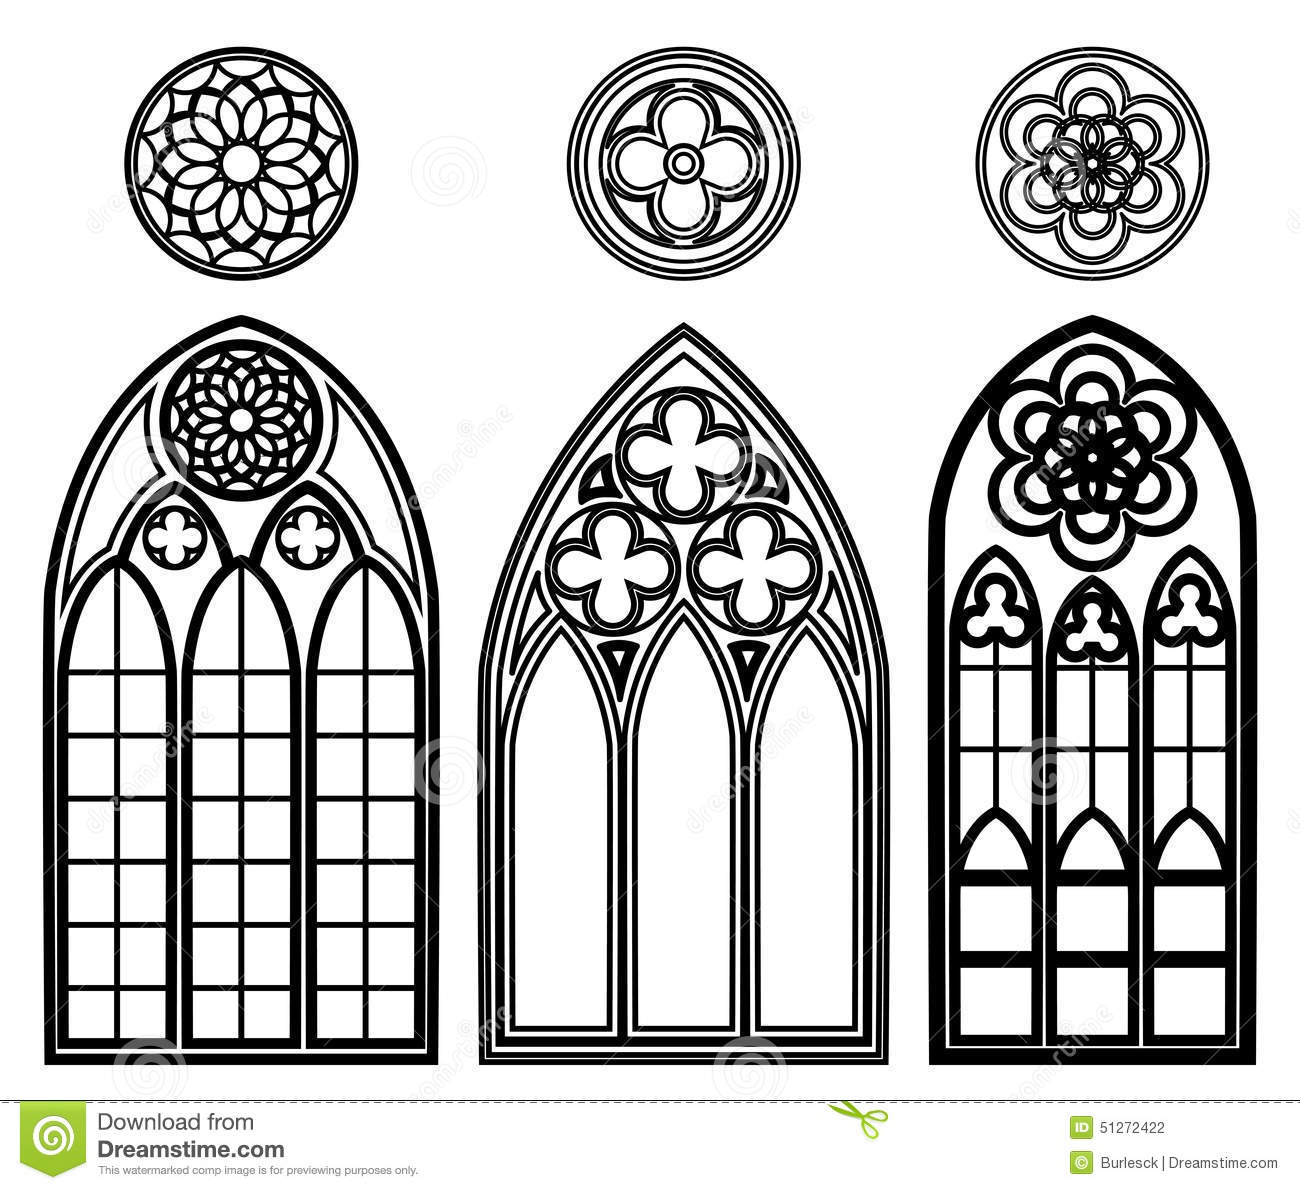 Gothic windows of cathedrals stock vector illustration for Gothic design elements